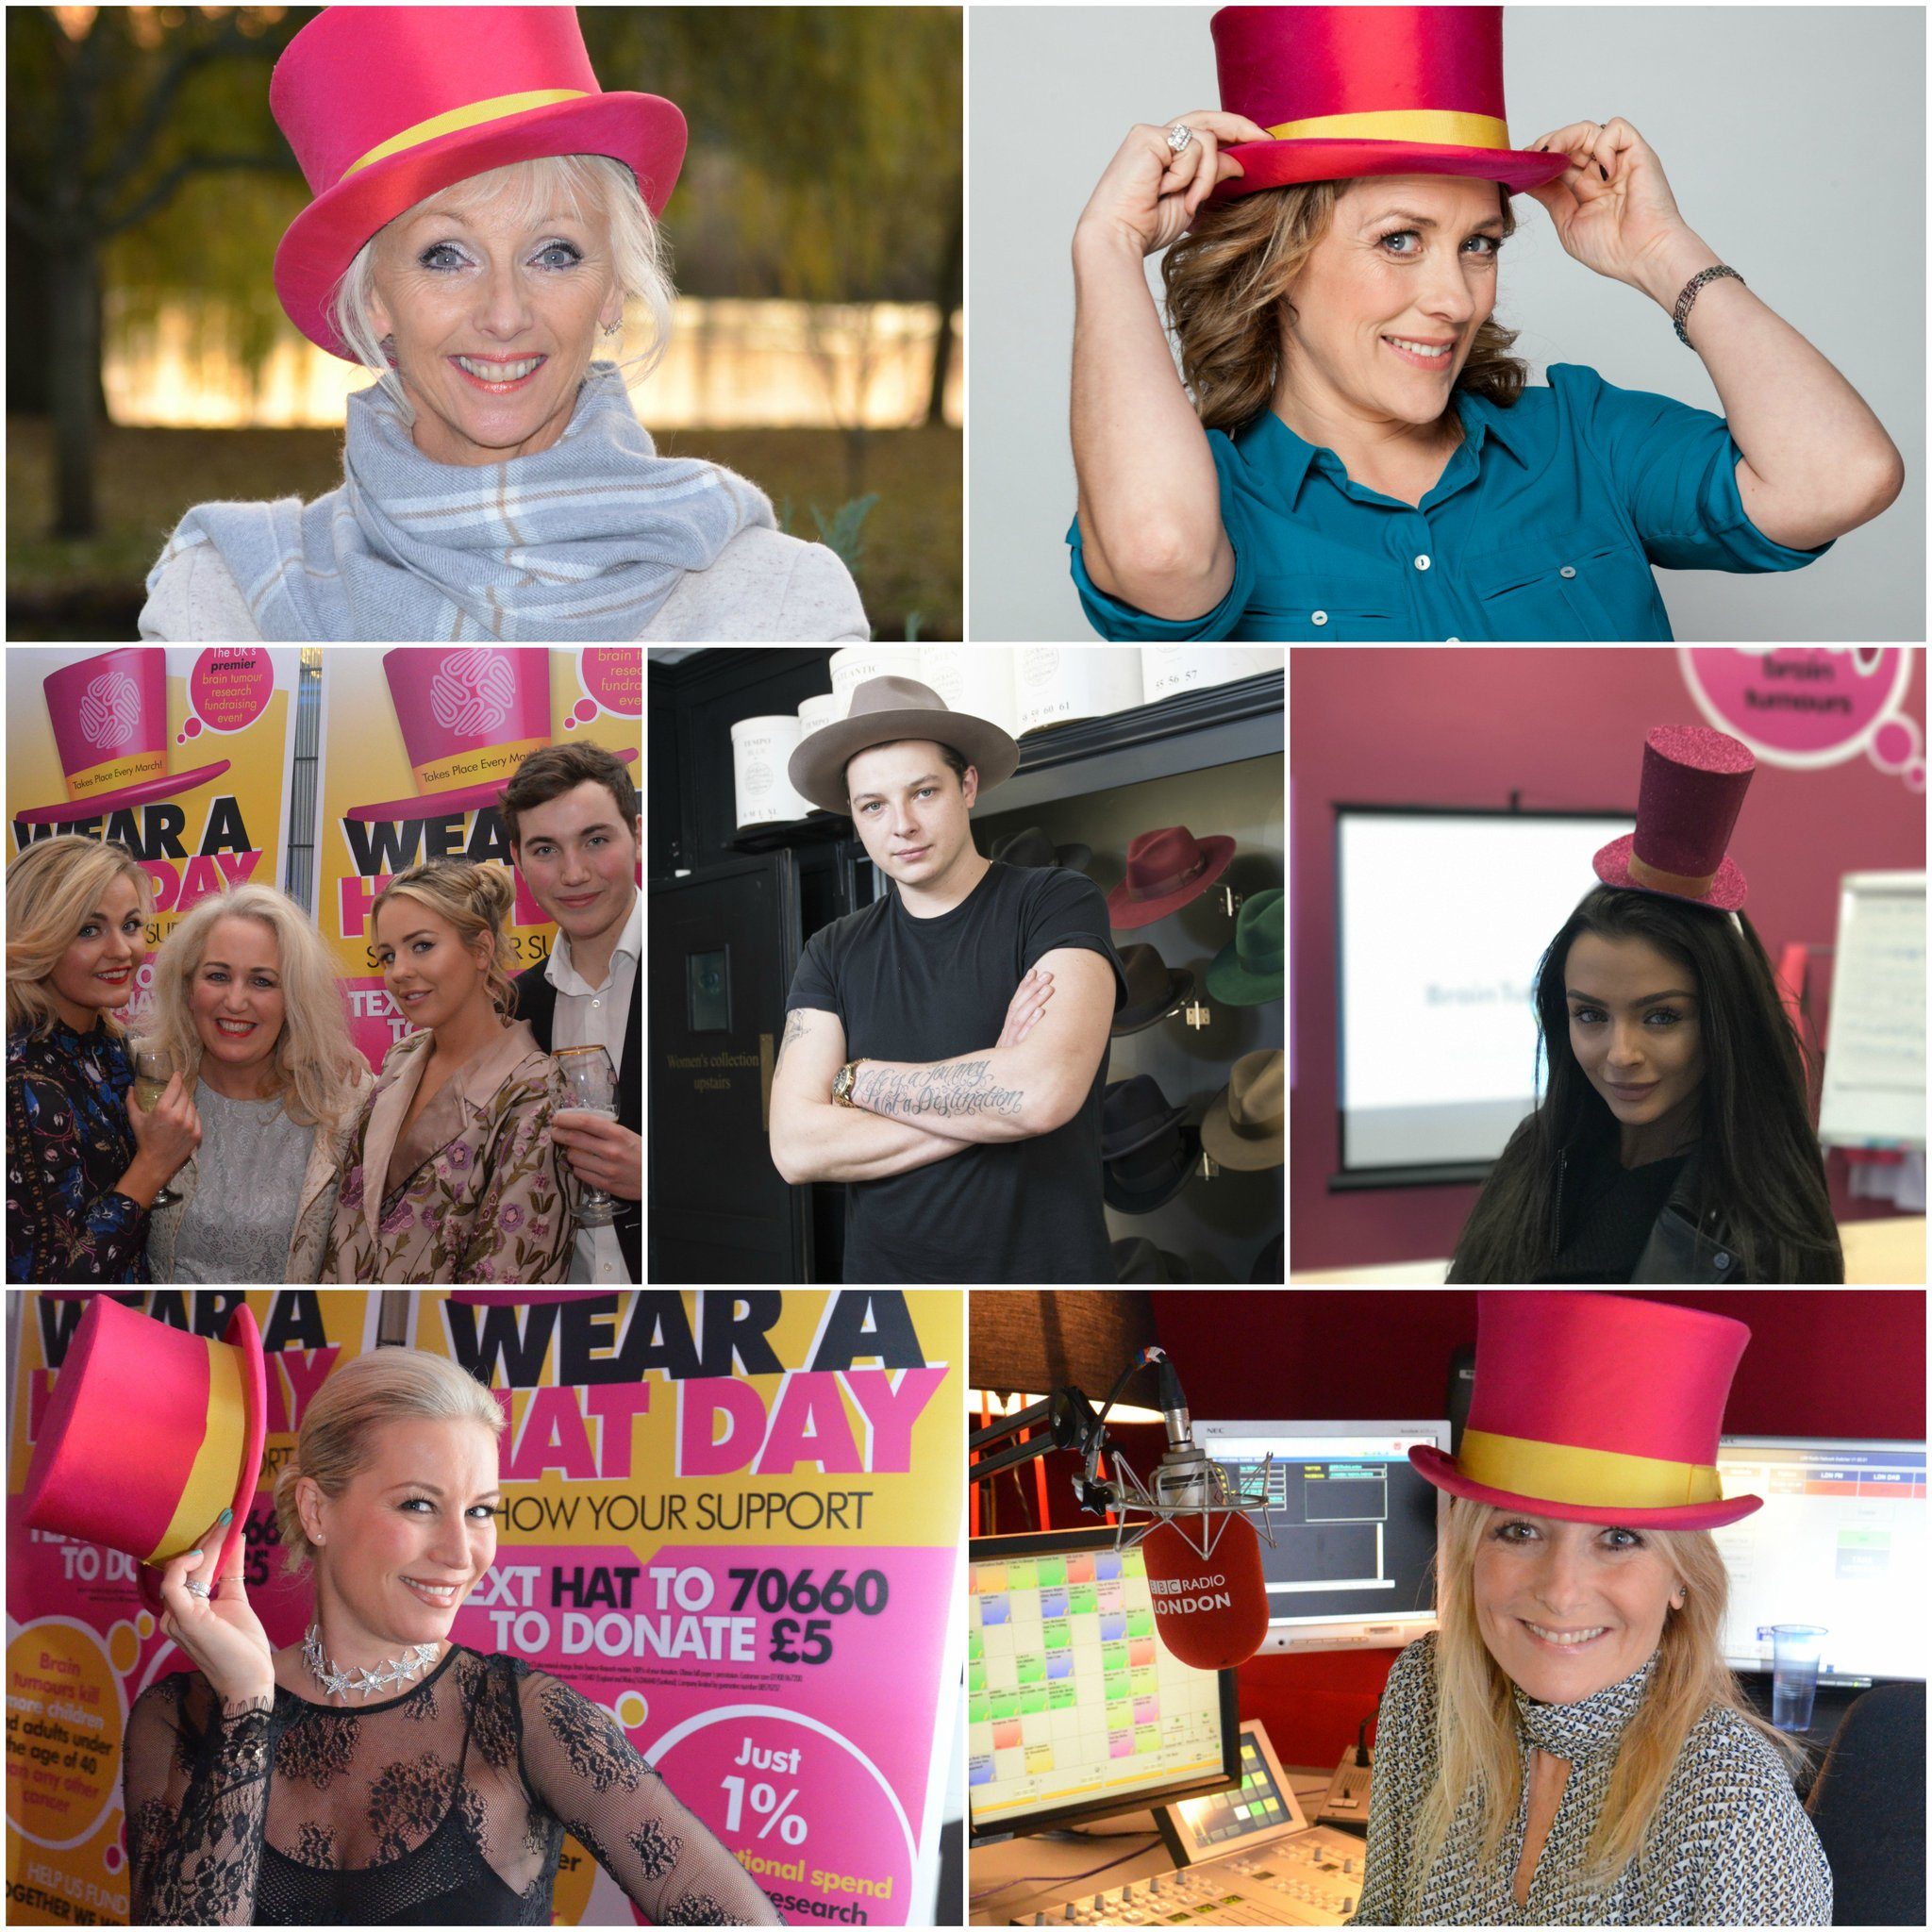 A massive thank you to our celebrity ambassadors, who have done such a great job raising awareness of #WearAHatDay. https://t.co/tUxrkxBByQ